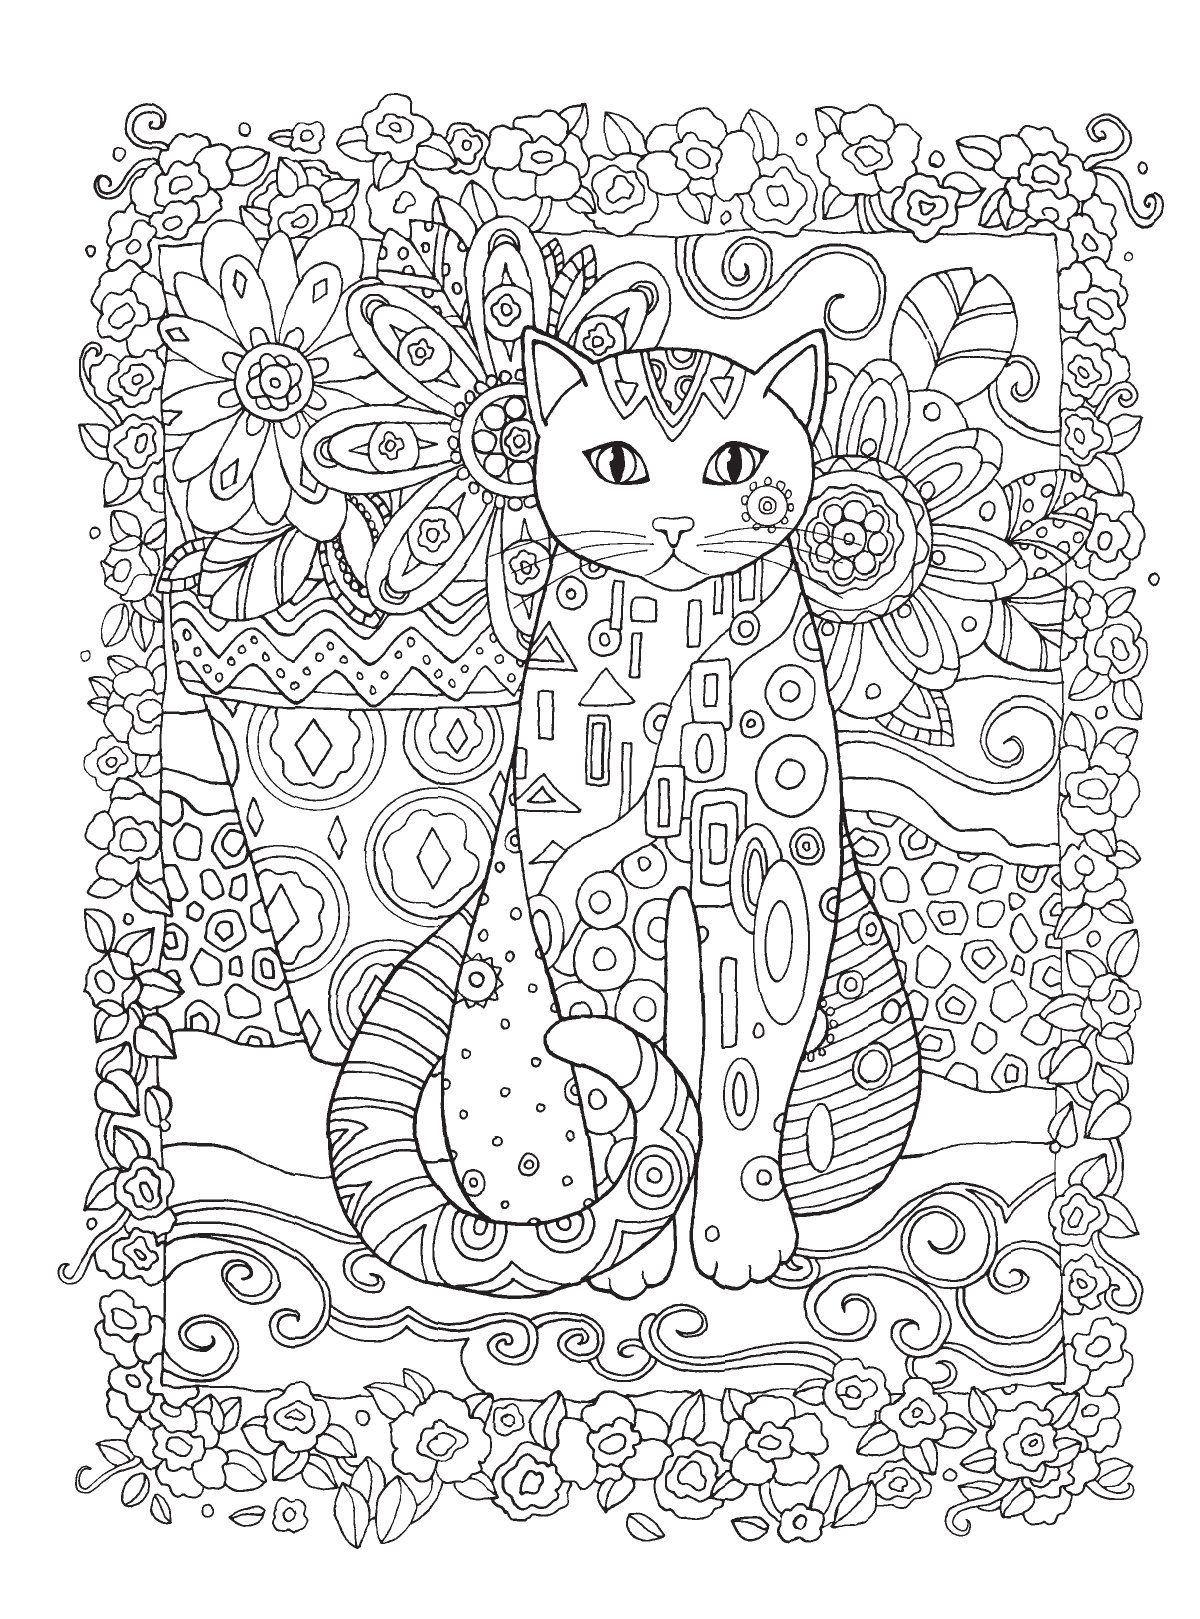 Todays Featured Pictures! Caleb Gideon Josh Luke Sarah Earth Day Tiger in Hat Portrait Welcome to coloringcom! Check out our Hanukkah and Christmas pictures!